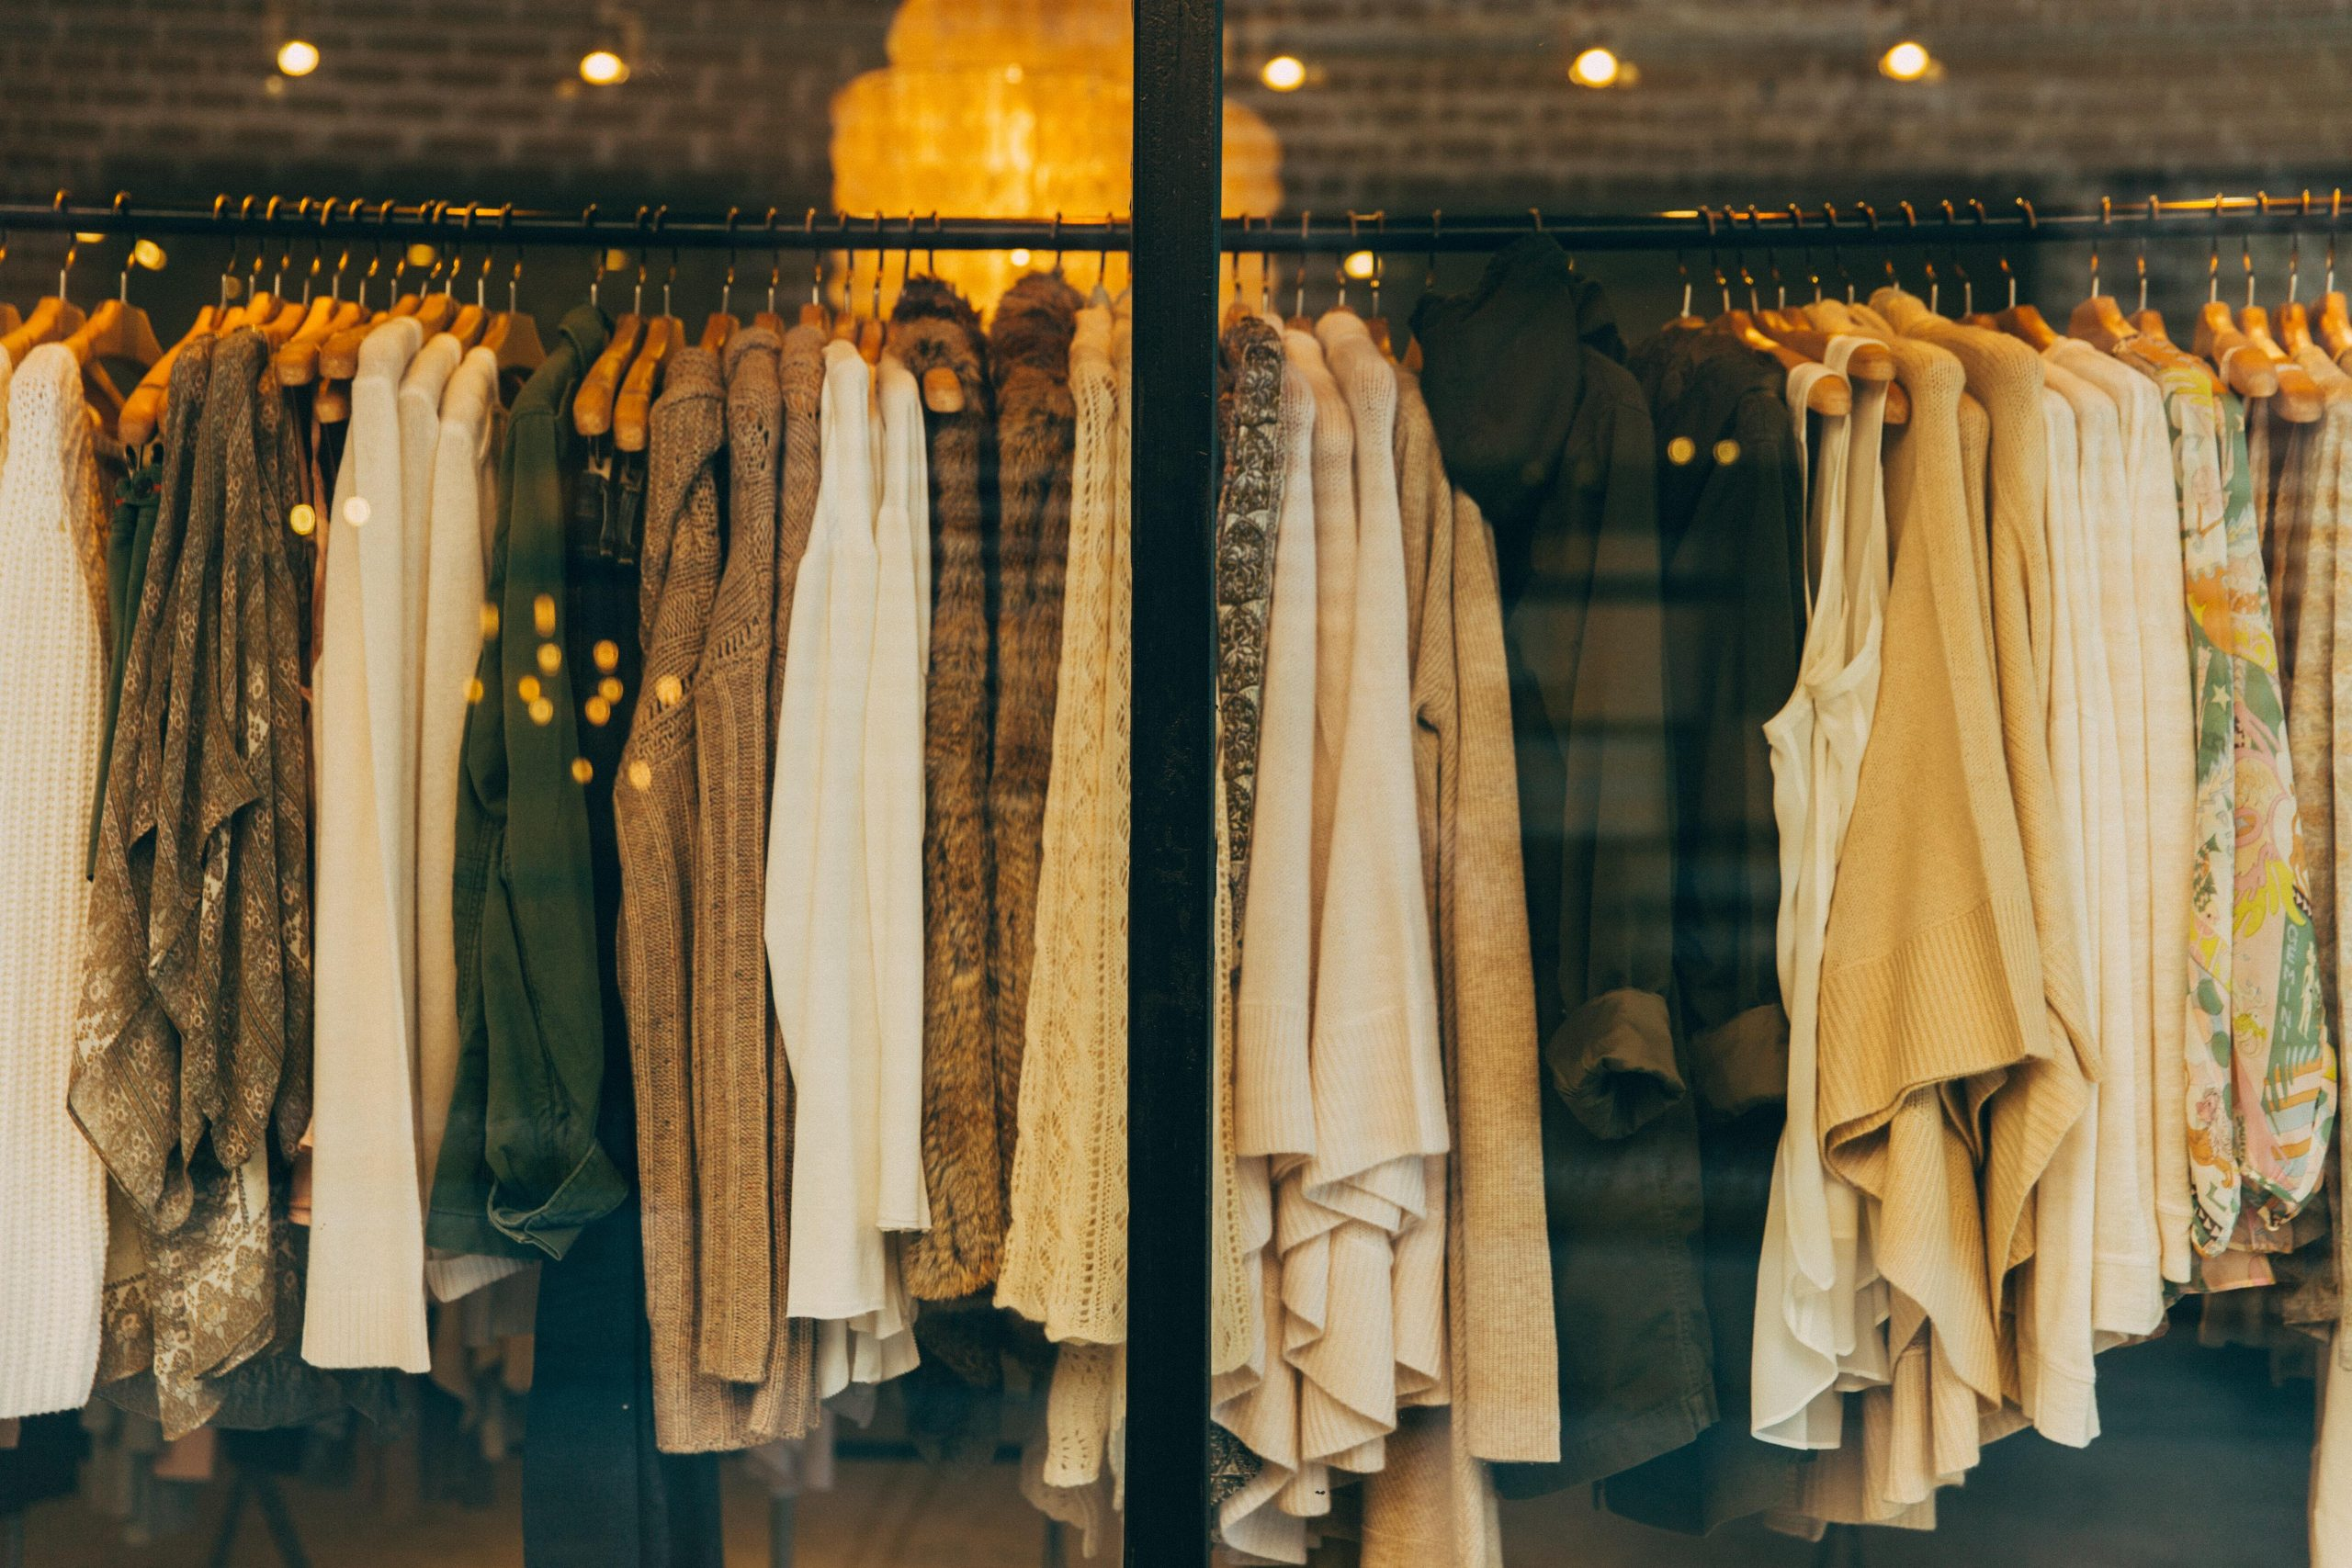 Do you care about how your clothes are made? | eOpinion.org